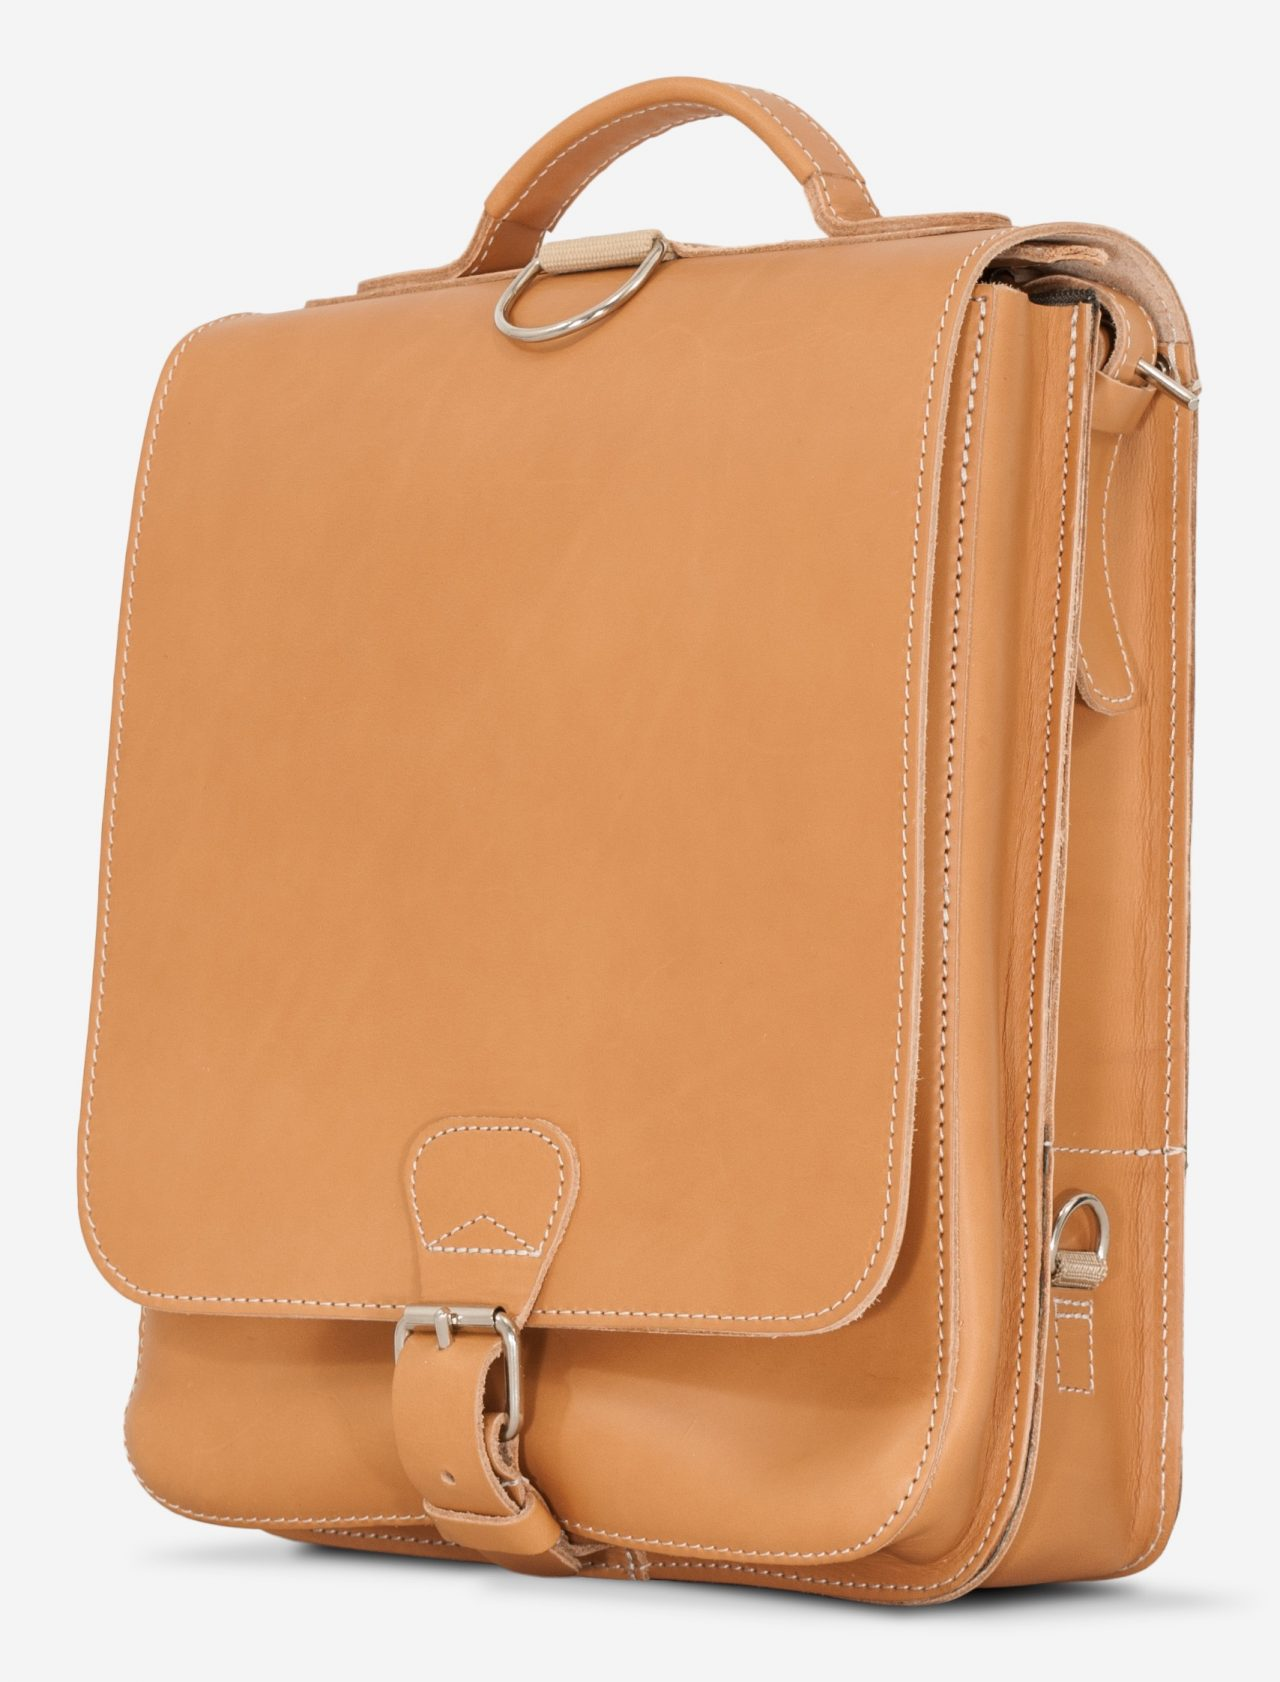 Side view of the vegetable tanned leather backpack with shoulder belt.